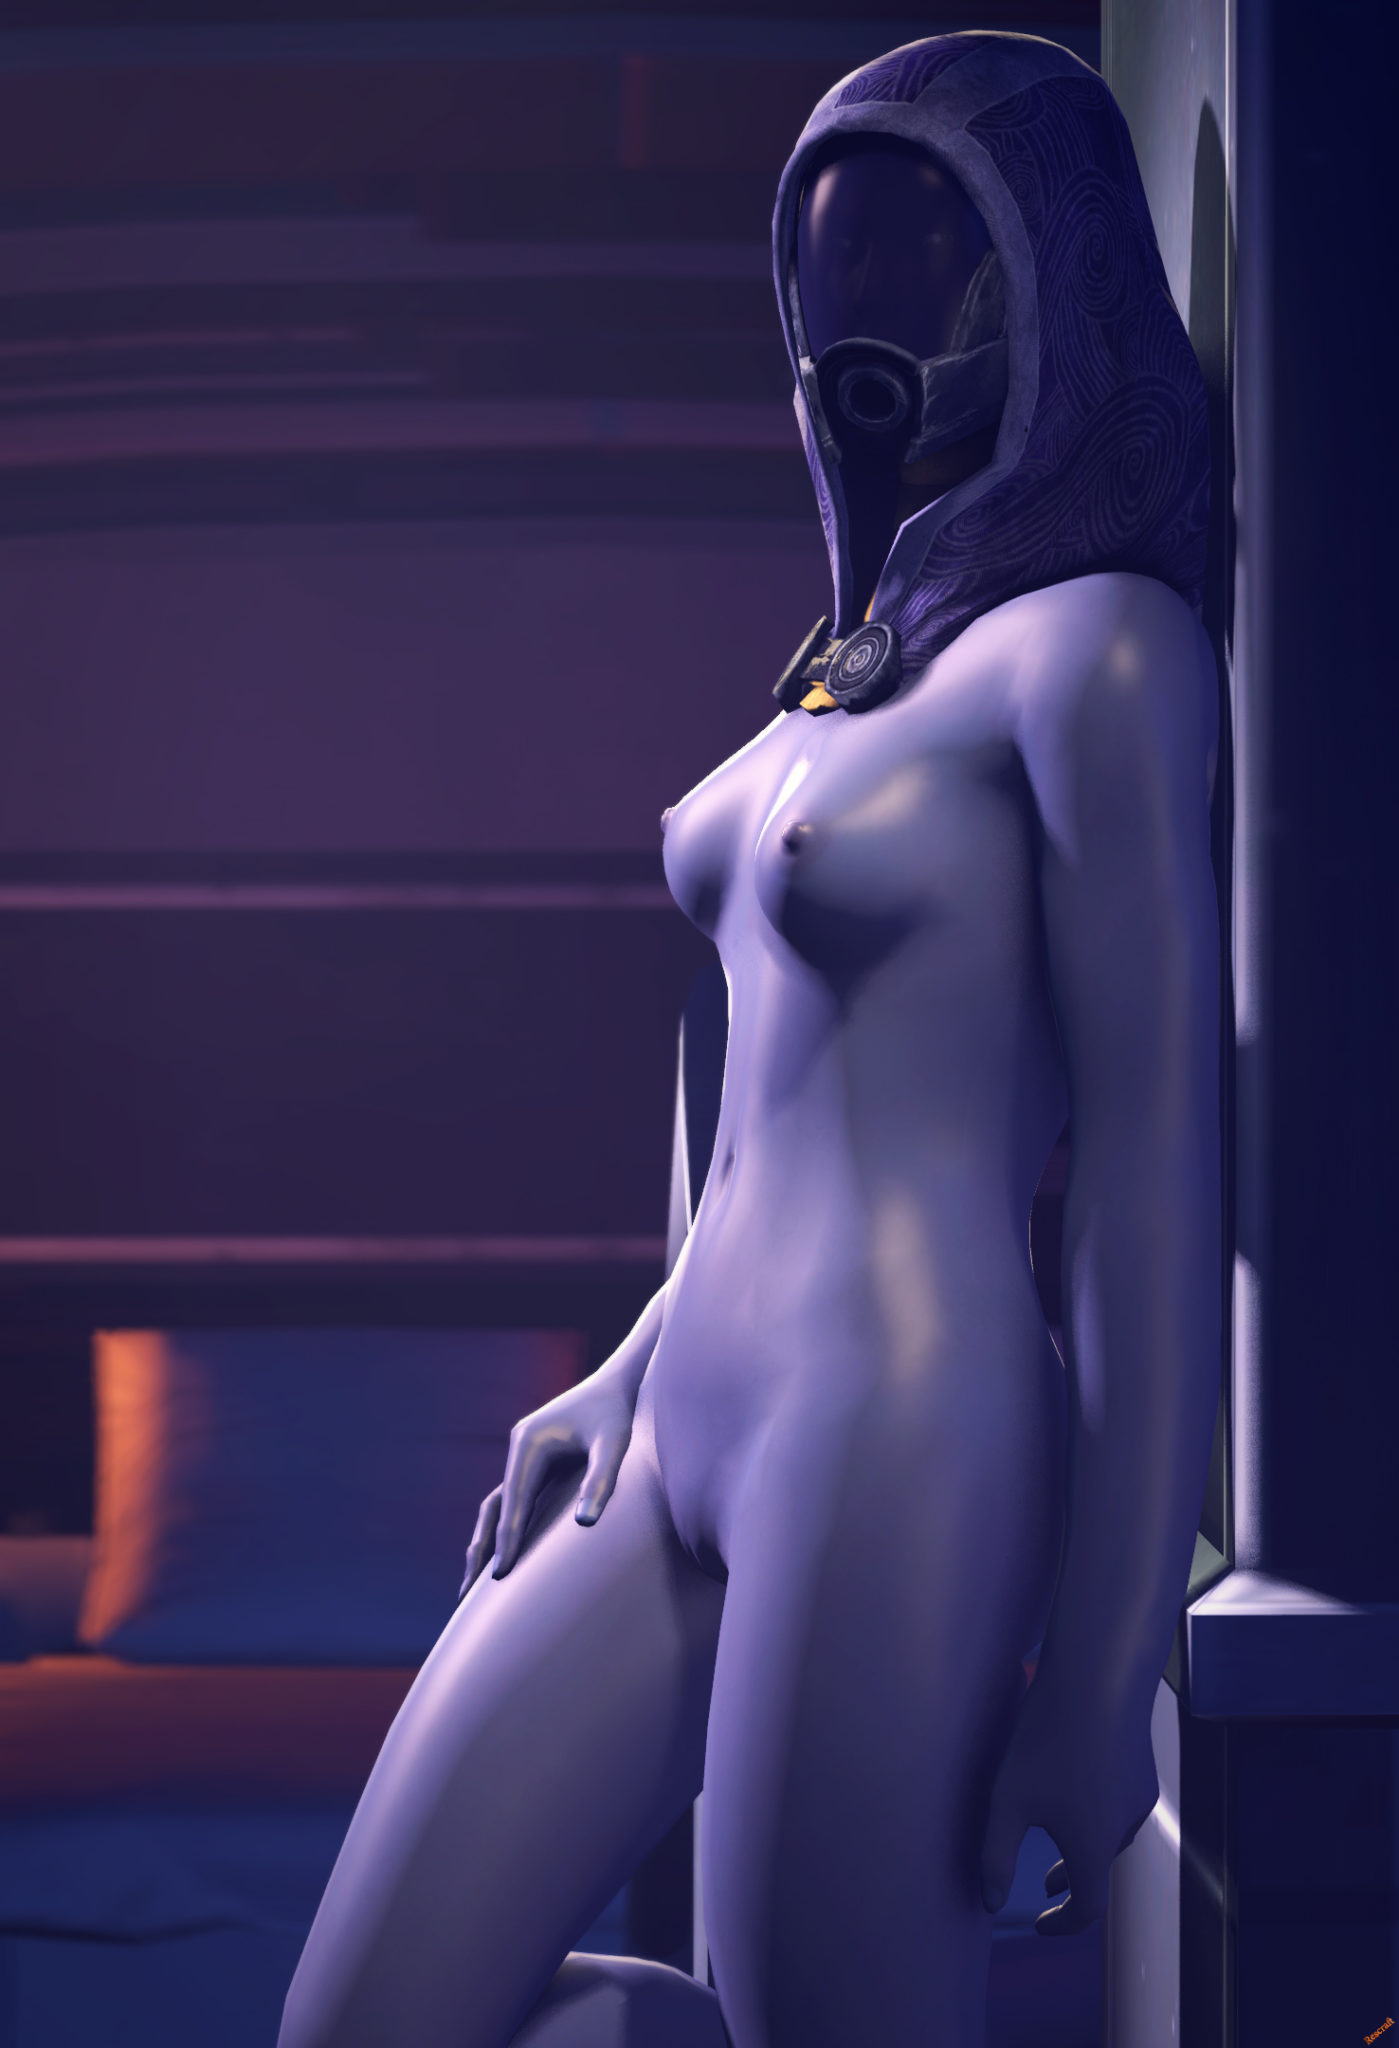 More Tali from Mass Effect Rule 34 – Nerd Porn!